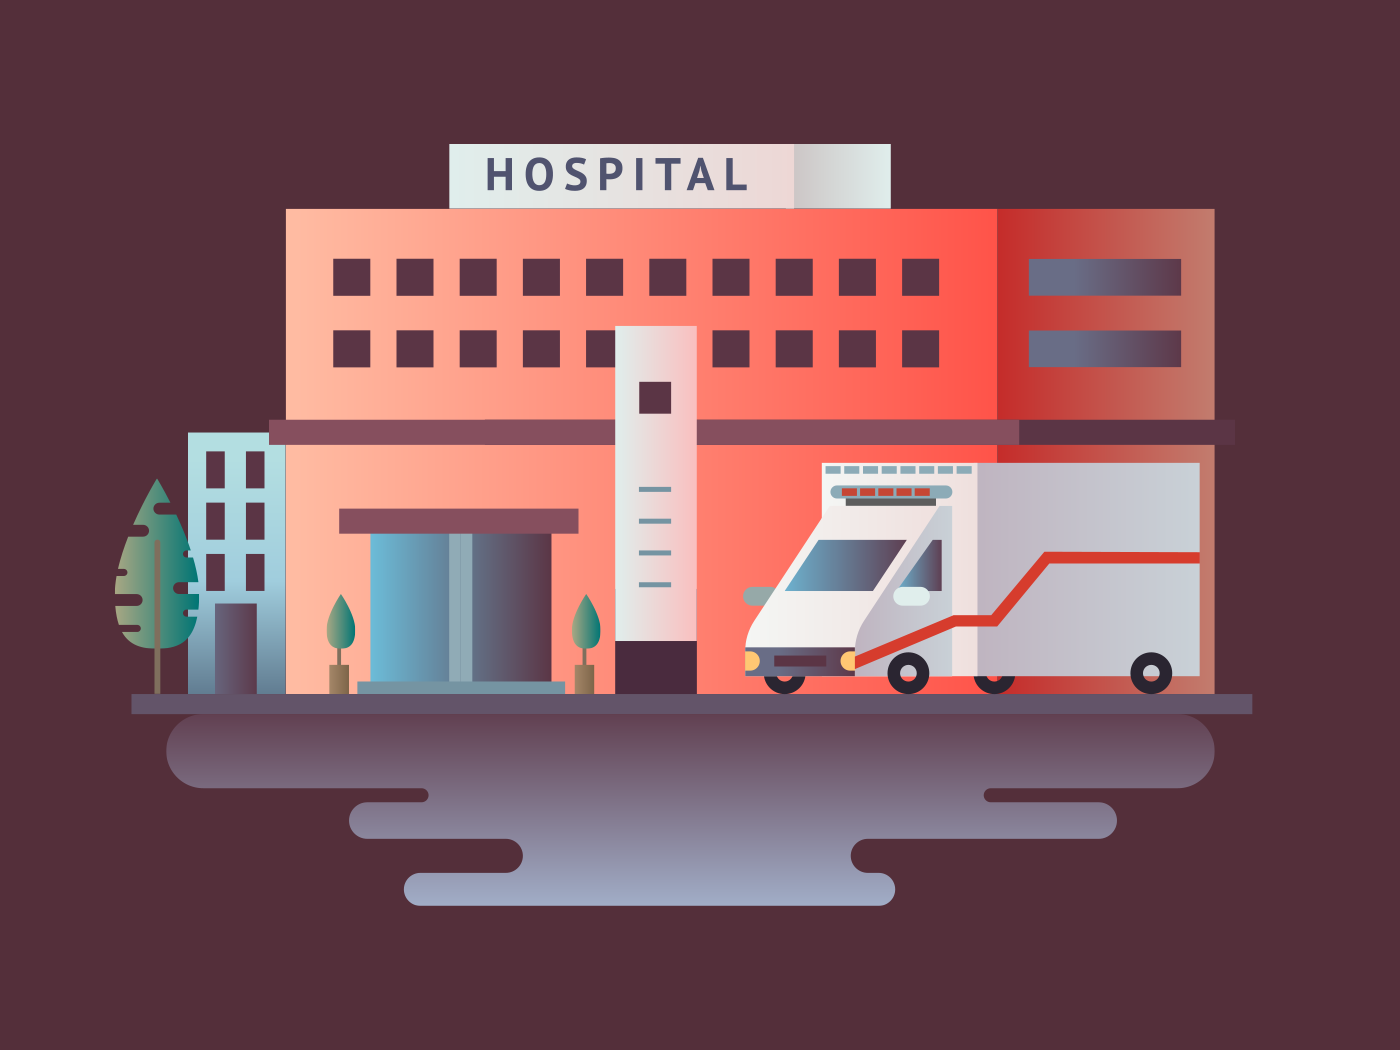 Hospital building illustration